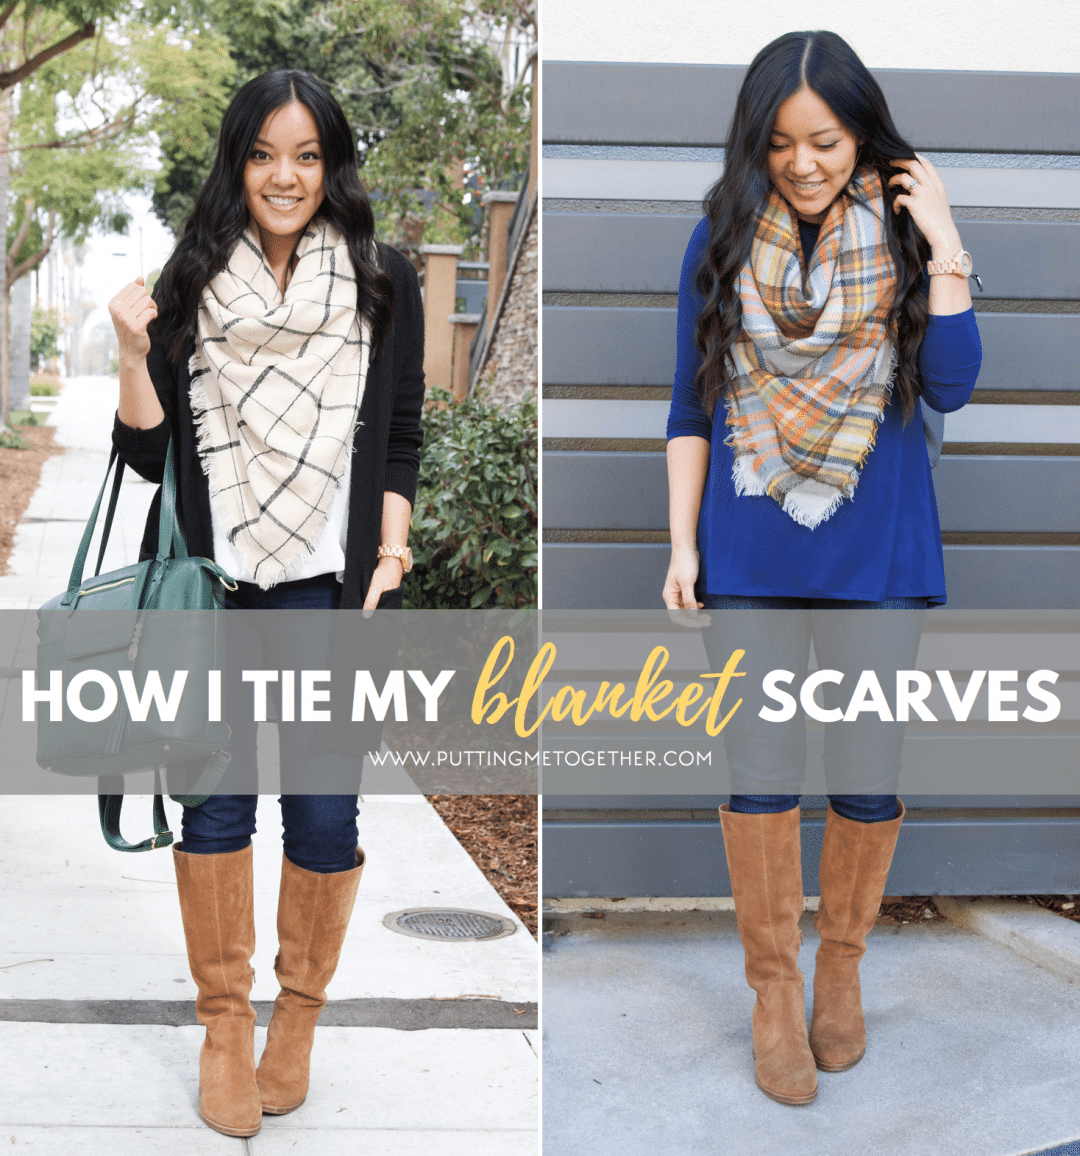 How I Tie My Blanket Scarves